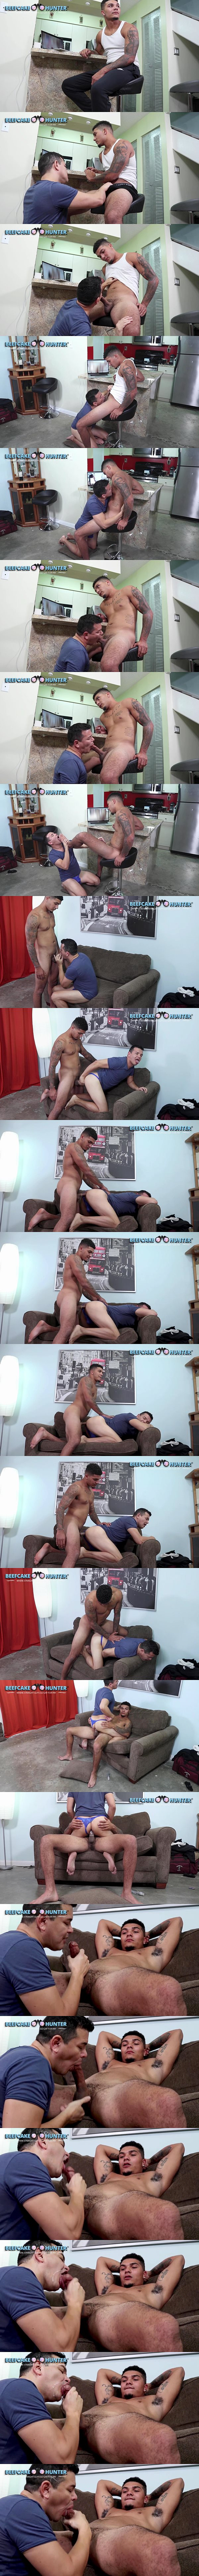 Beefcakehunter - manly straight muscle hunk, construction worker Kameroon fucks Victor's mouth and ass before Victor jerks Kameroon off in Kameroon Magic Ride 02